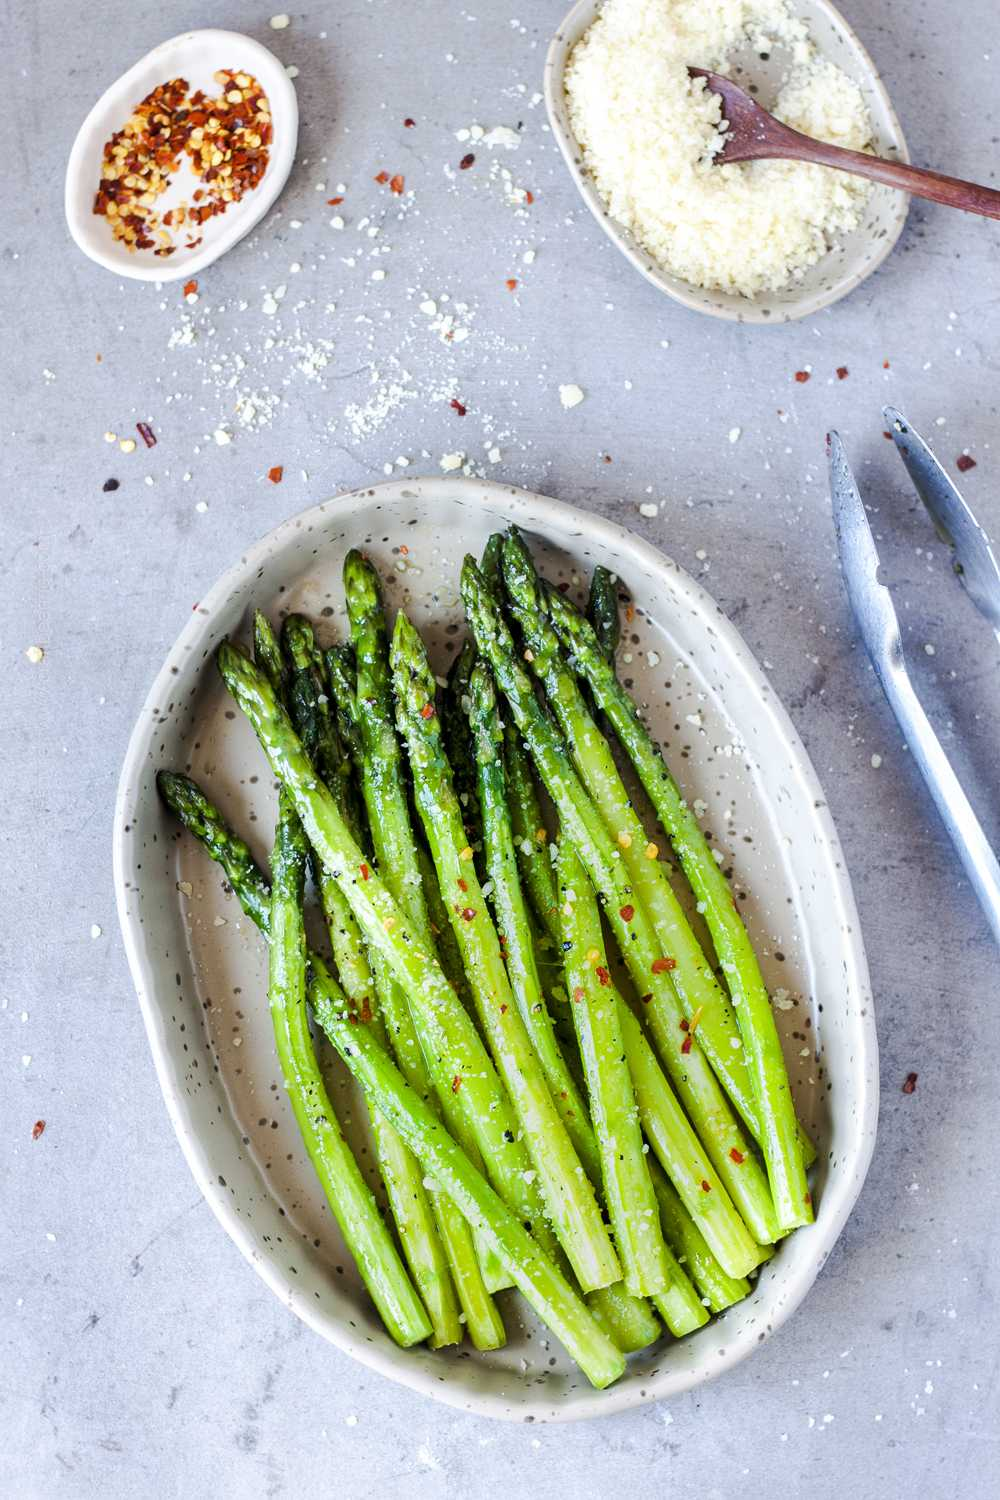 Perfectly cooked skillet asparagus.